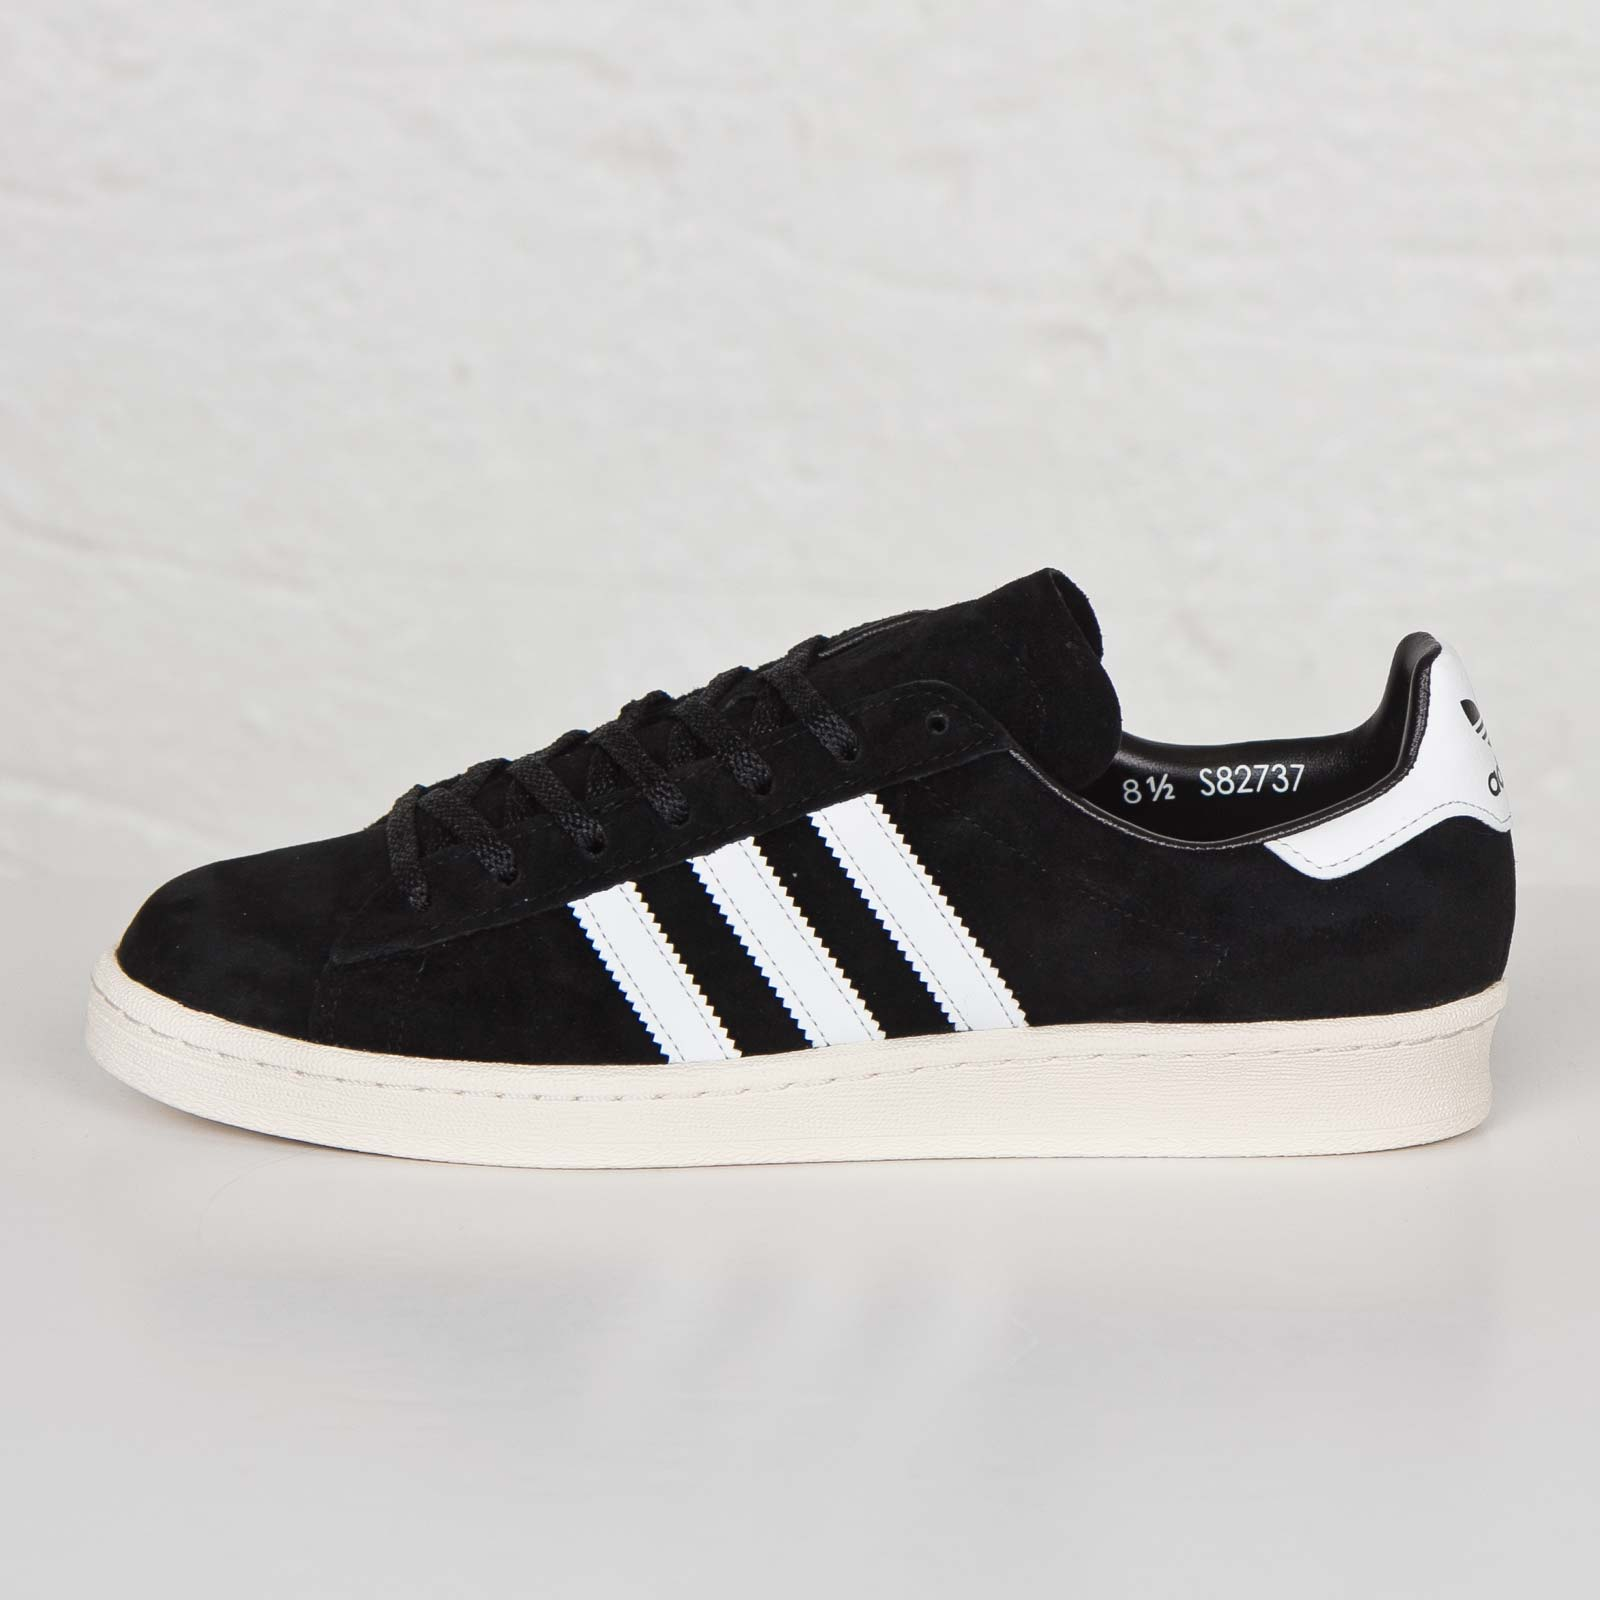 new concept 31ac1 1e566 ... adidas Campus 80s Japan Pack Vintage ...